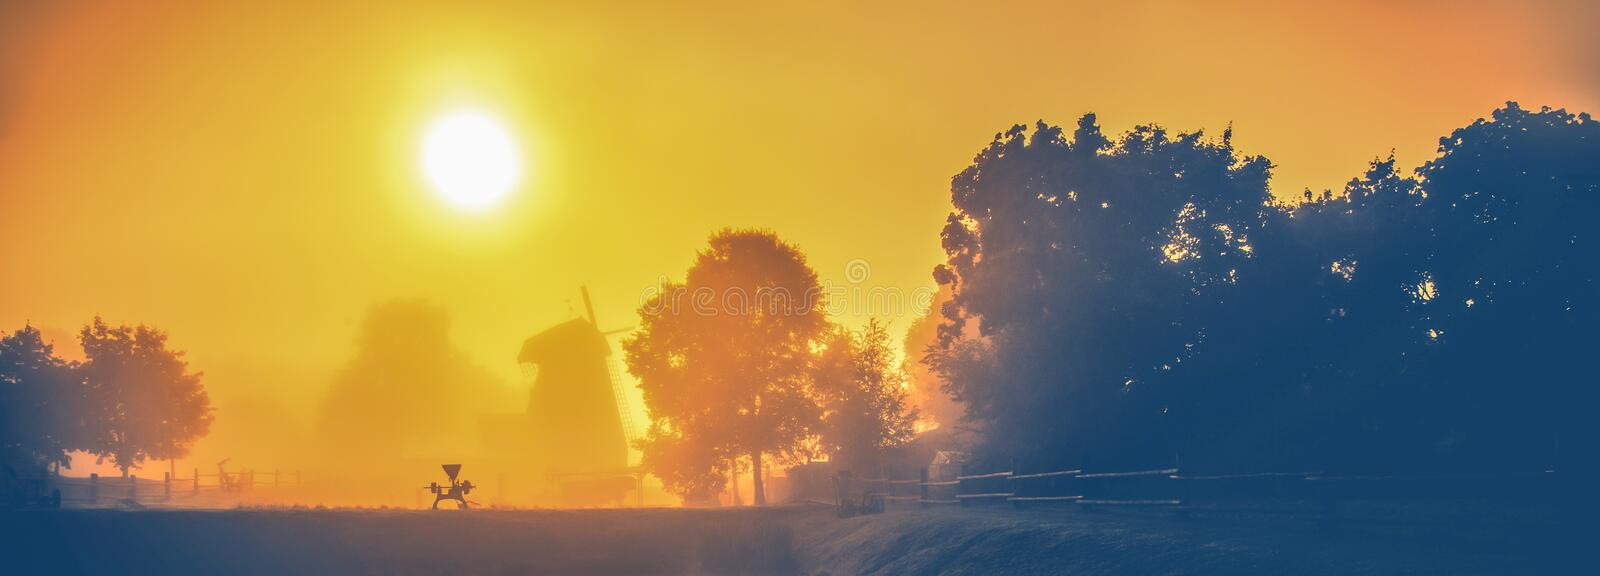 Countryside foggy scenic nature landscape stock images